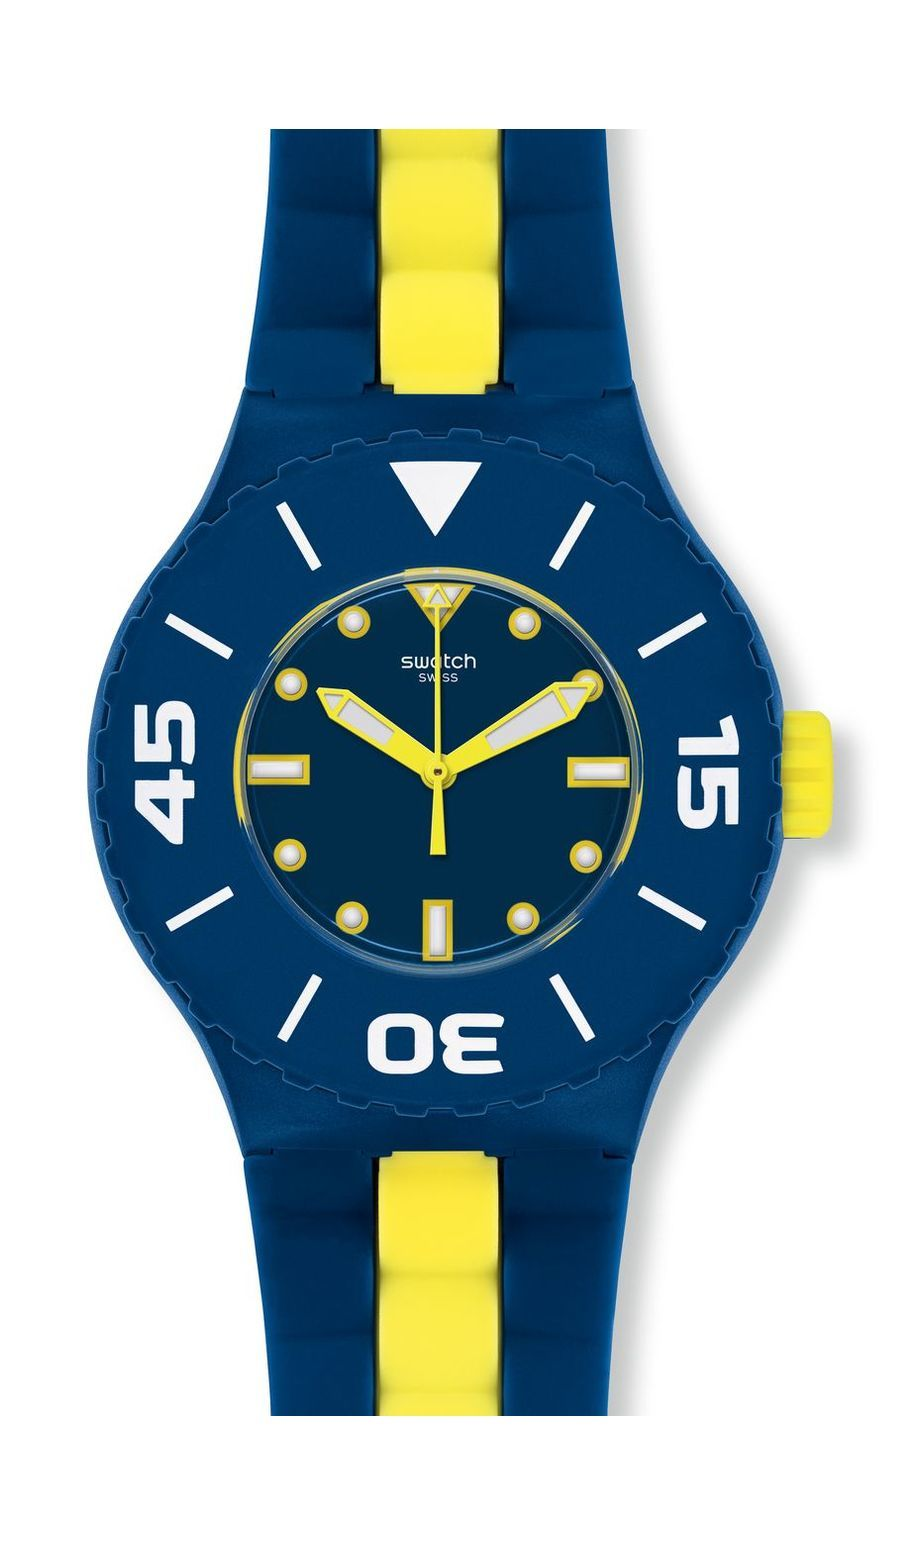 Swatch - LONG WAVES - 1